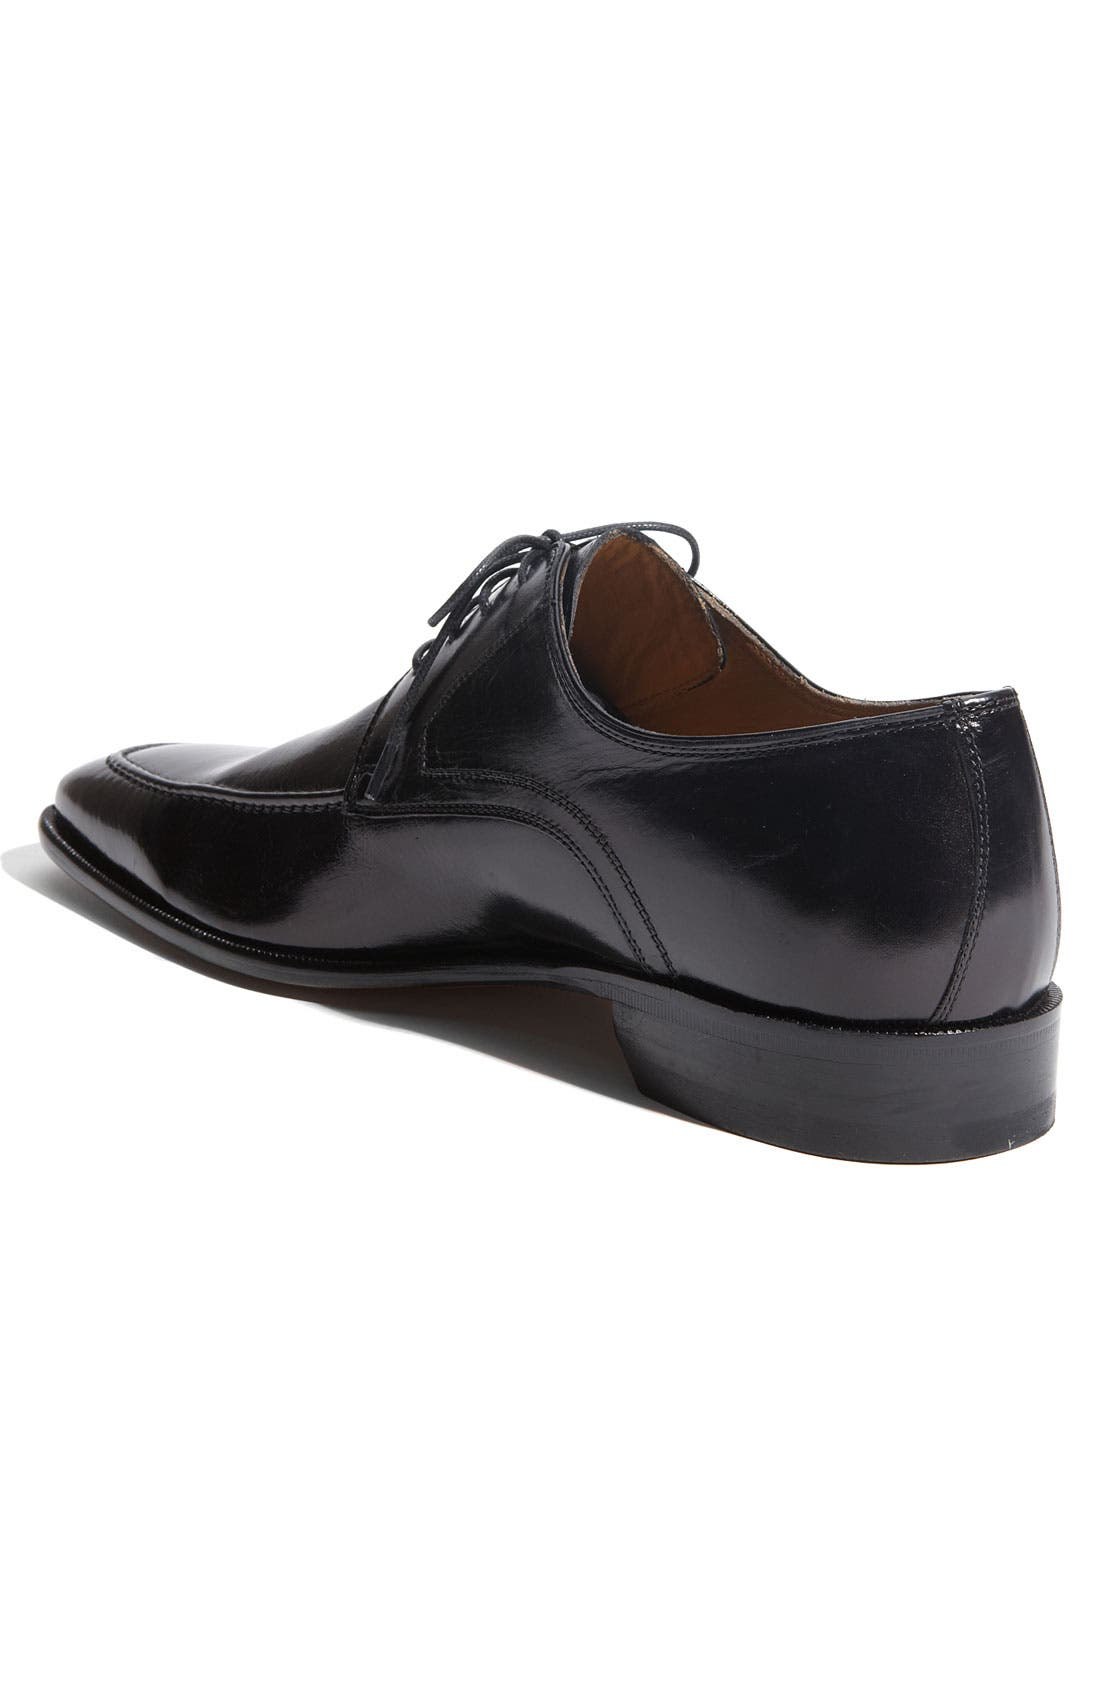 Alternate Image 2  - John W. Nordstrom® 'Arturo' Oxford